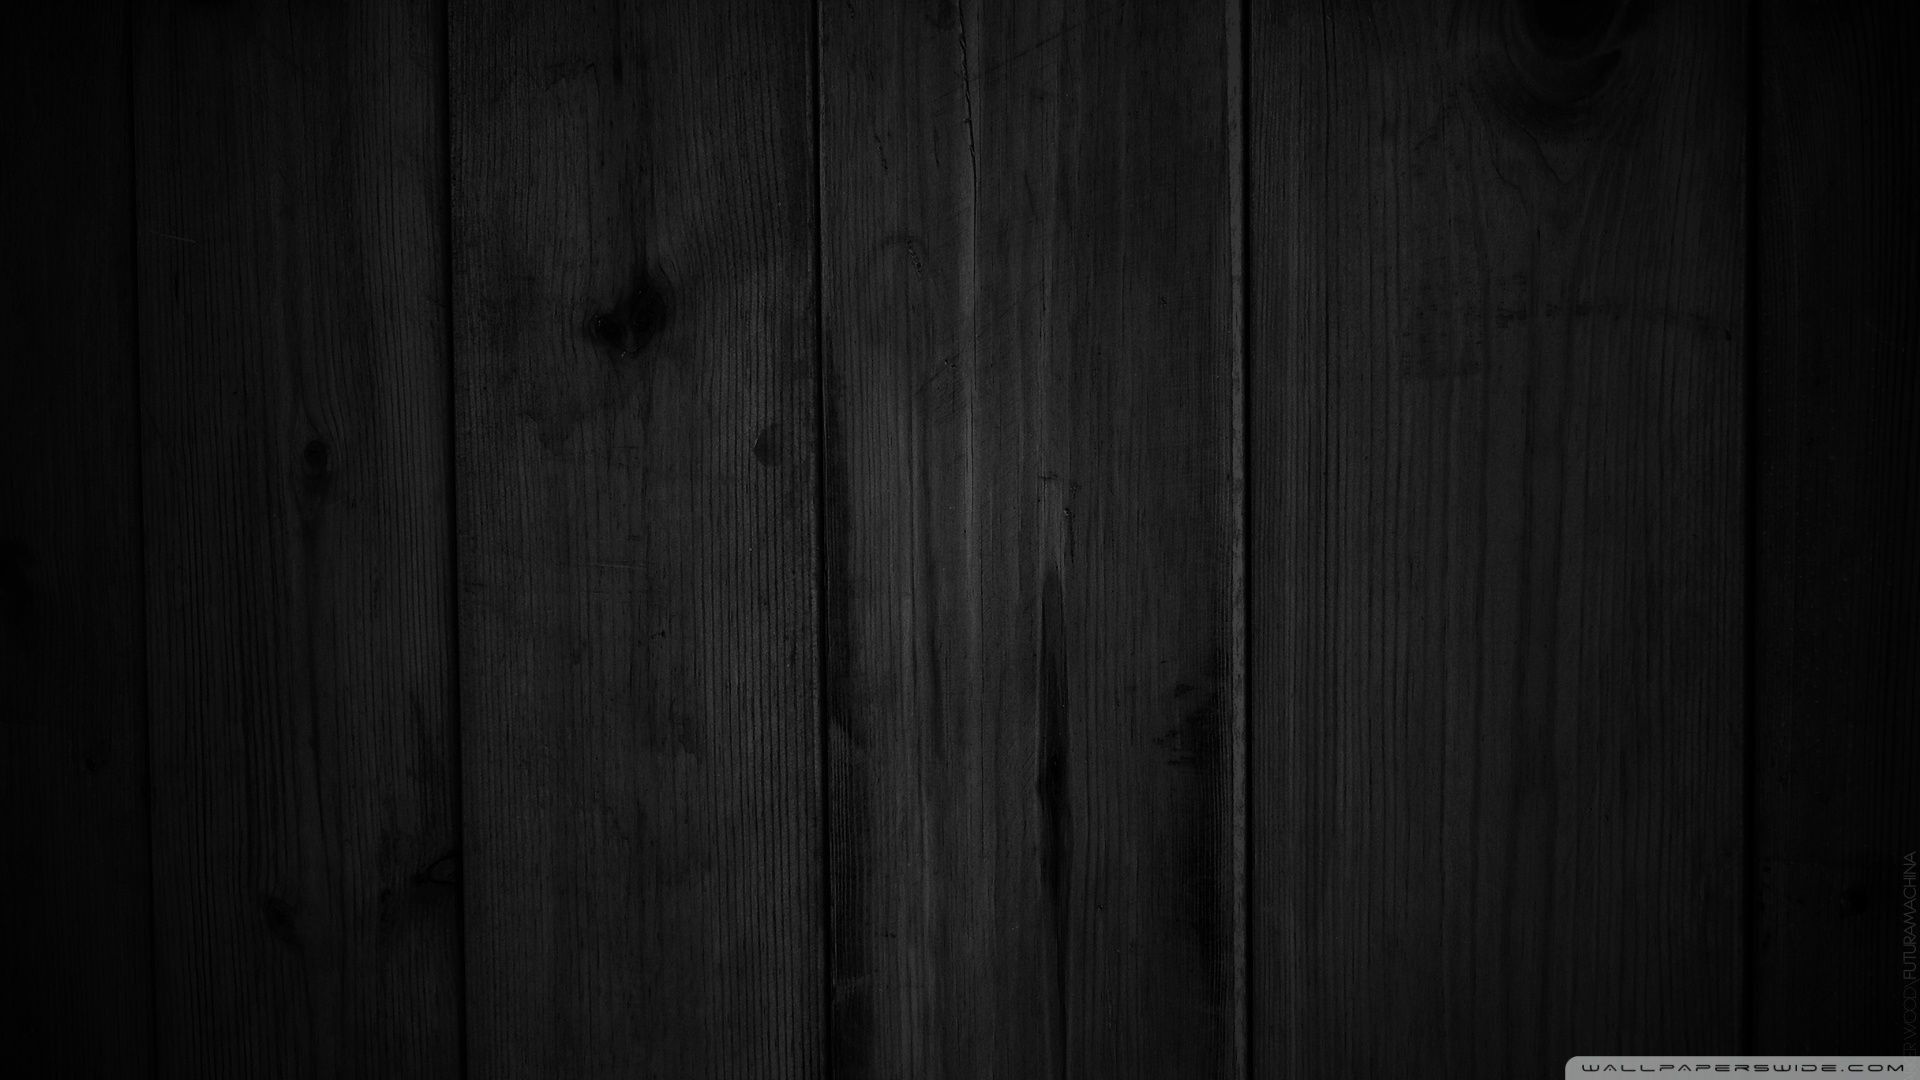 Black wood google search wooden pinterest black for Black and white wallpaper for walls